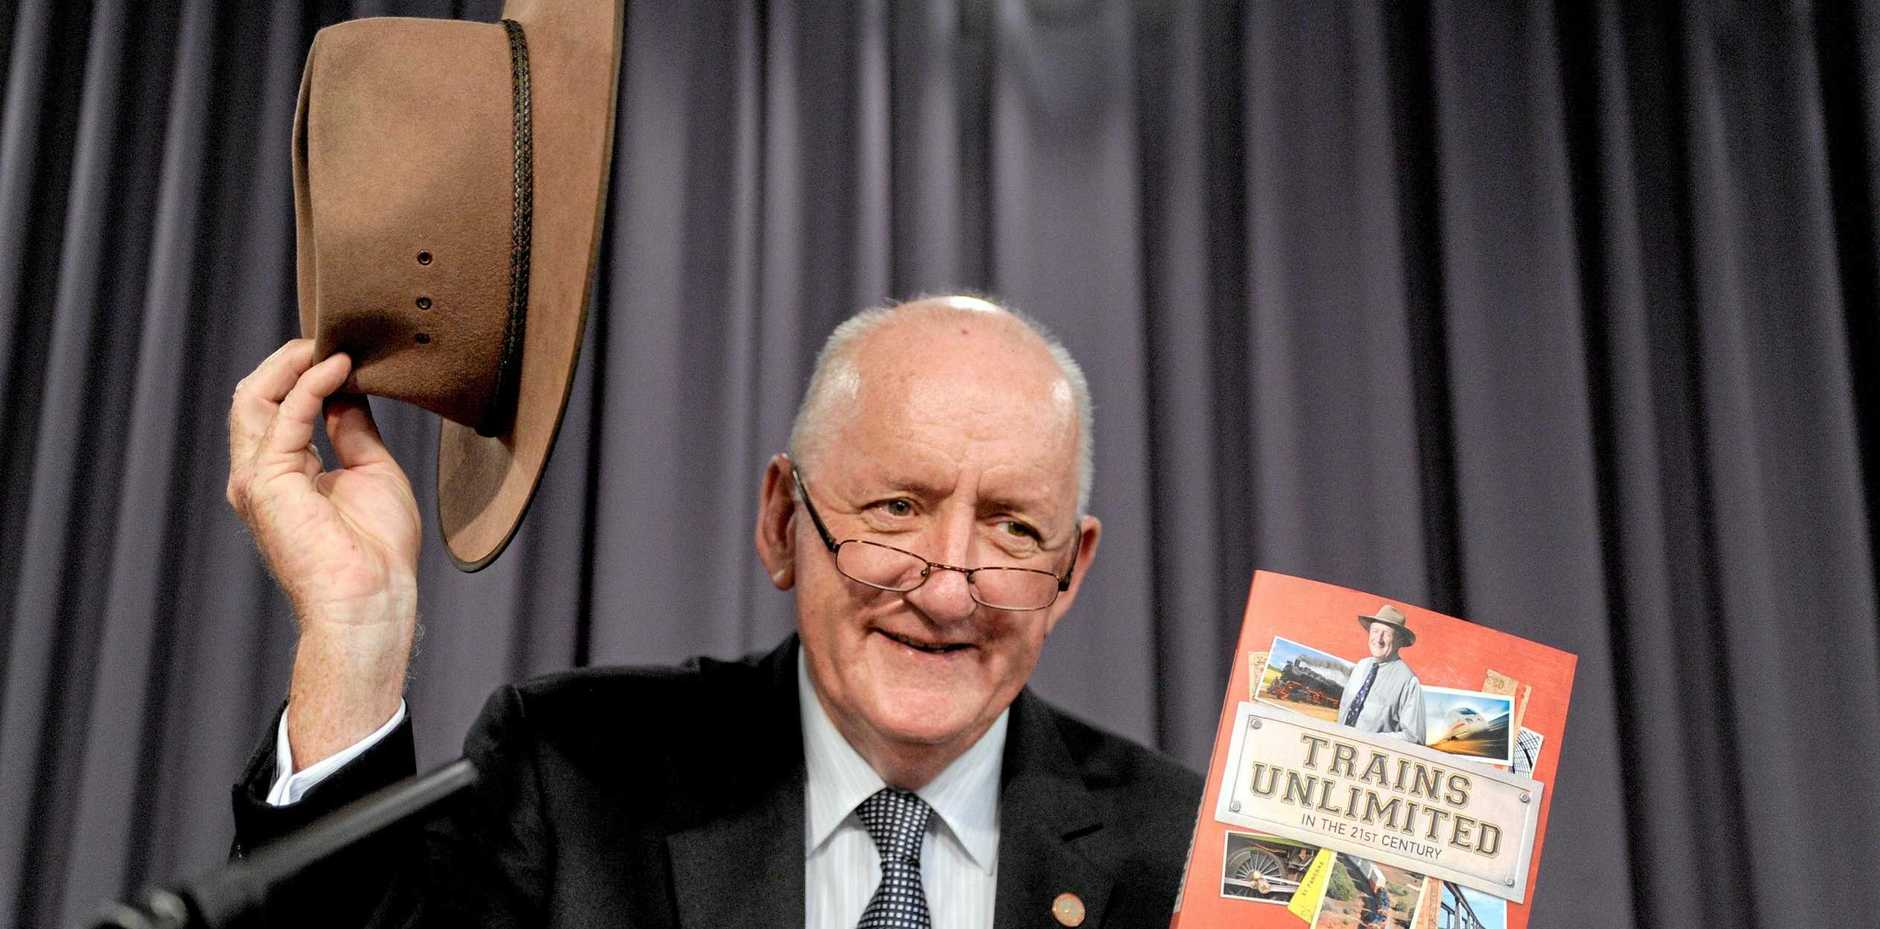 Former ambassador to the Holy See Tim Fischer poses for photographs before his speech at the National Press Club in Canberra, Wednesday, Feb. 1, 2012. Mr Fischer spoke on diplomacy overseas. (AAP Image/Alan Porritt) NO ARCHIVING